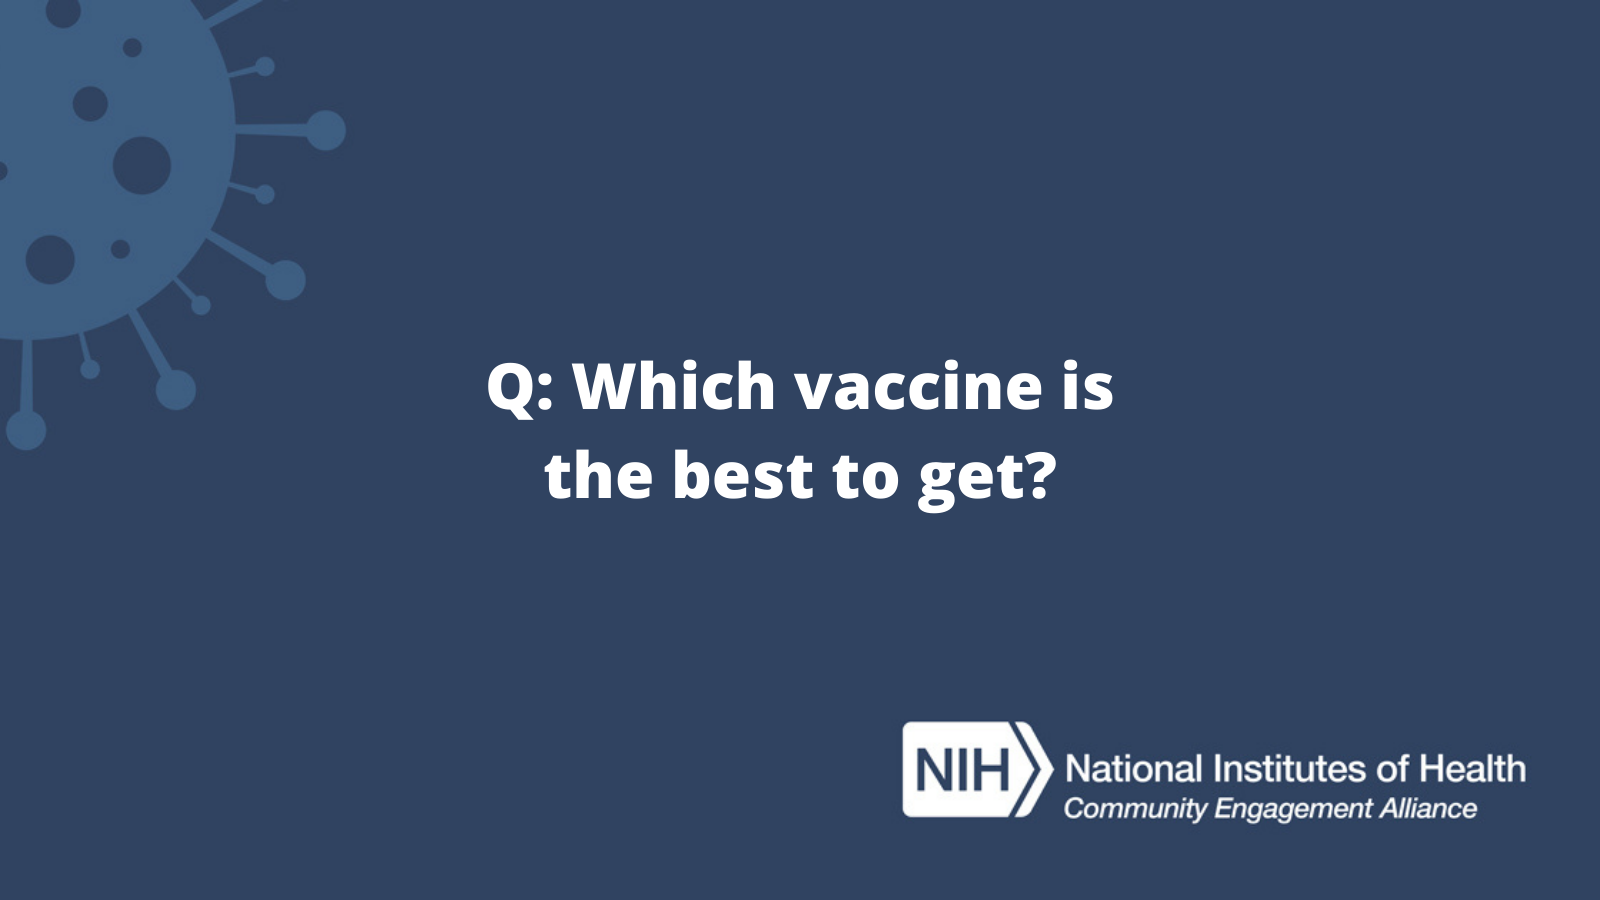 Q: Which vaccine is the best to get?